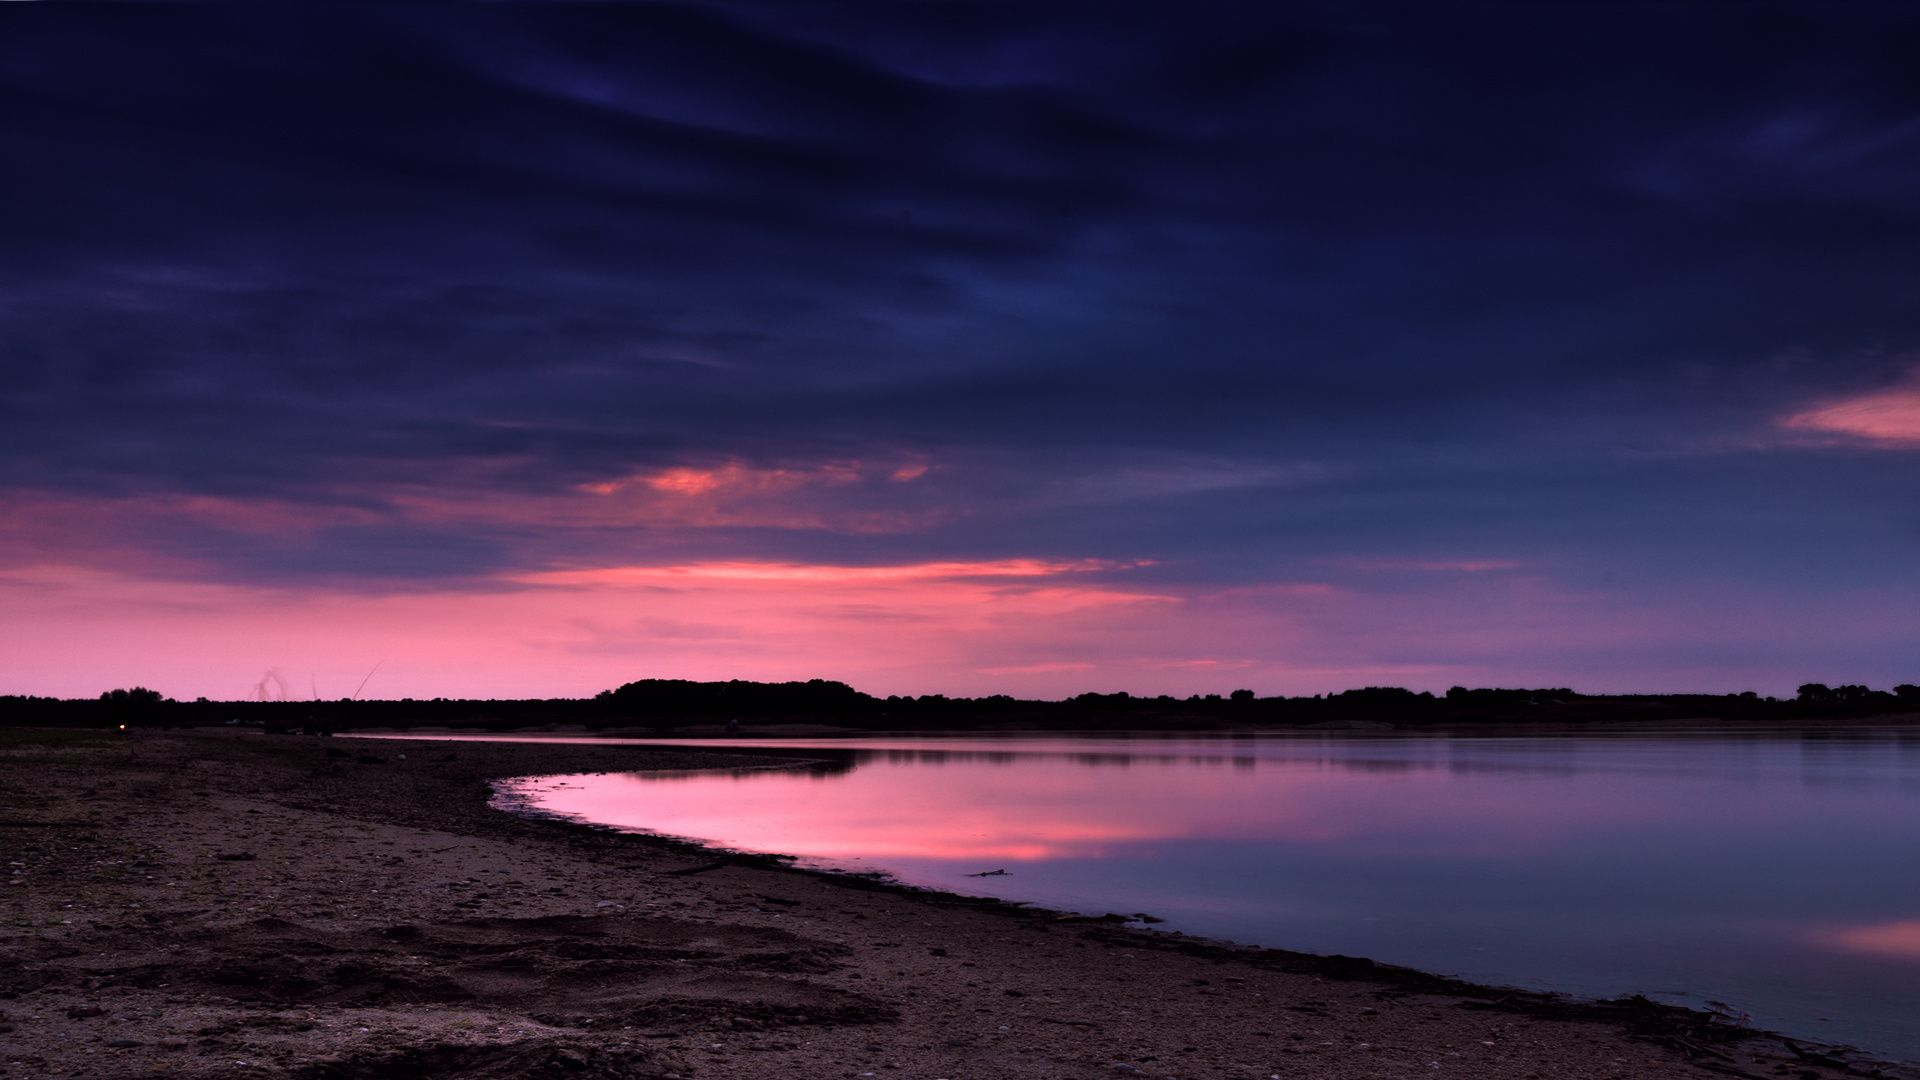 Simple Wallpaper Night Beach - 8769382f443583093205c53974a78a56  Pictures.jpg